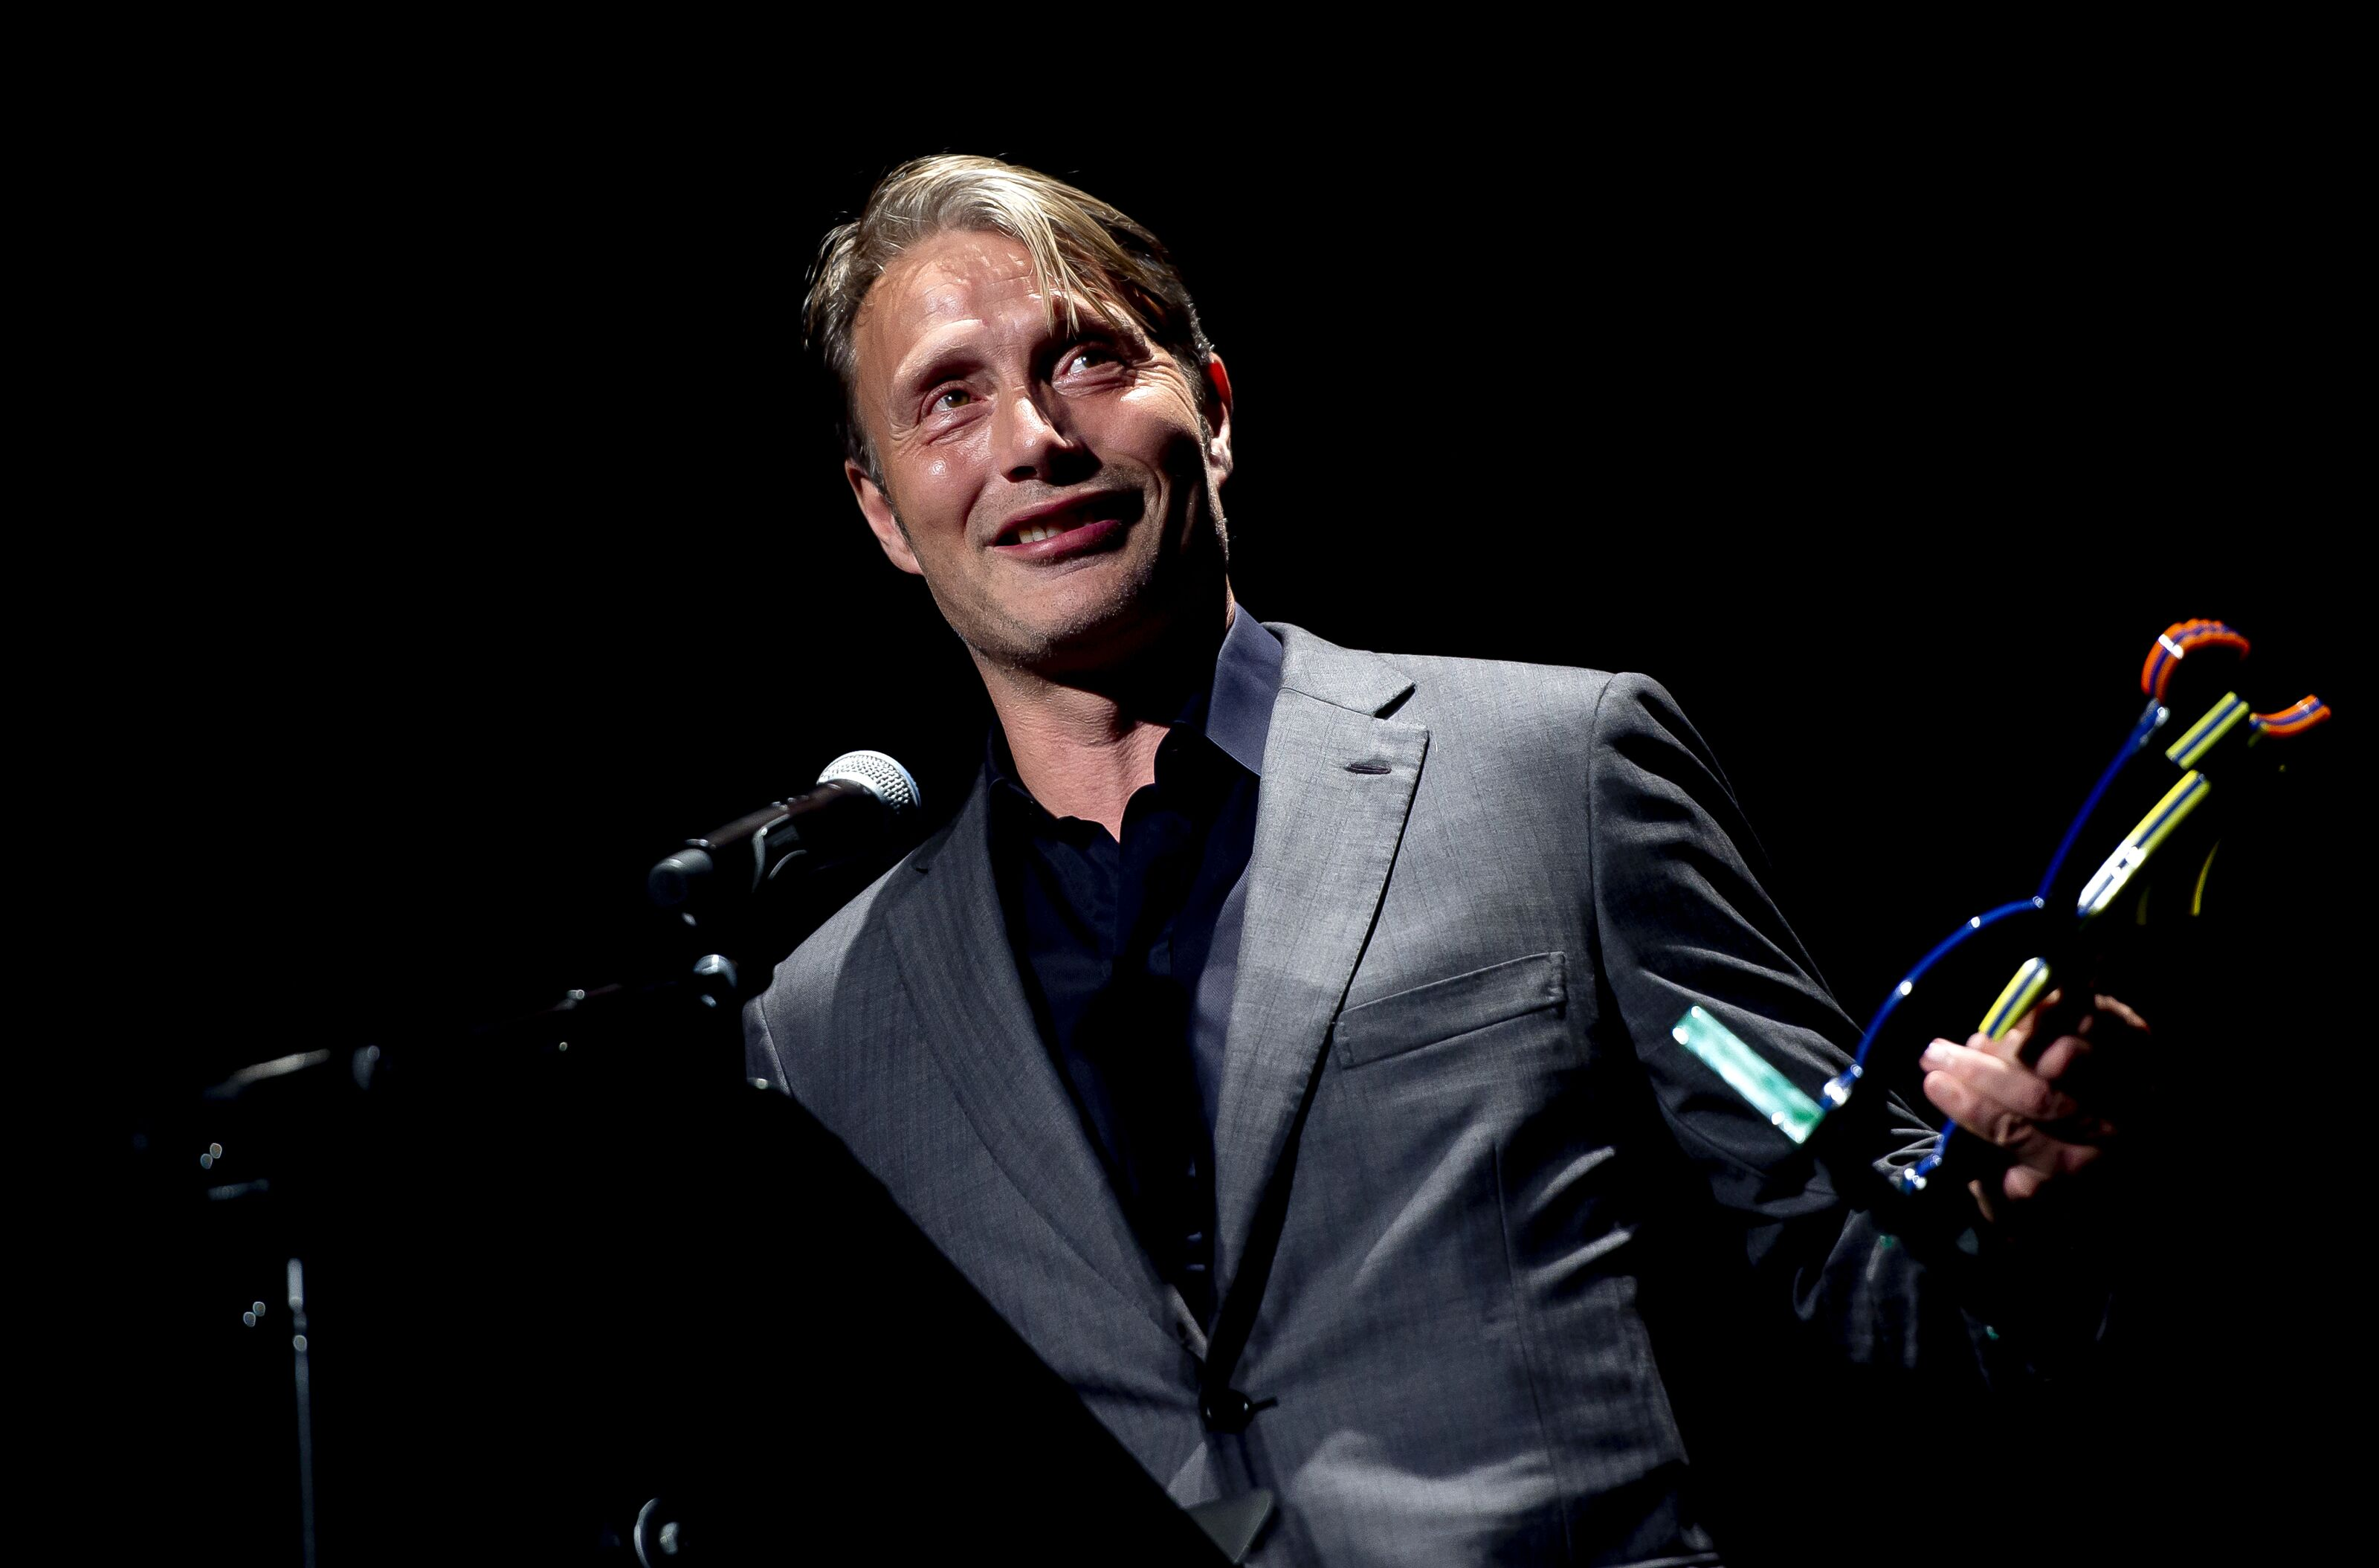 Mads Mikkelsen Talks Polar Bears, Arctic, And His Gymnast Past